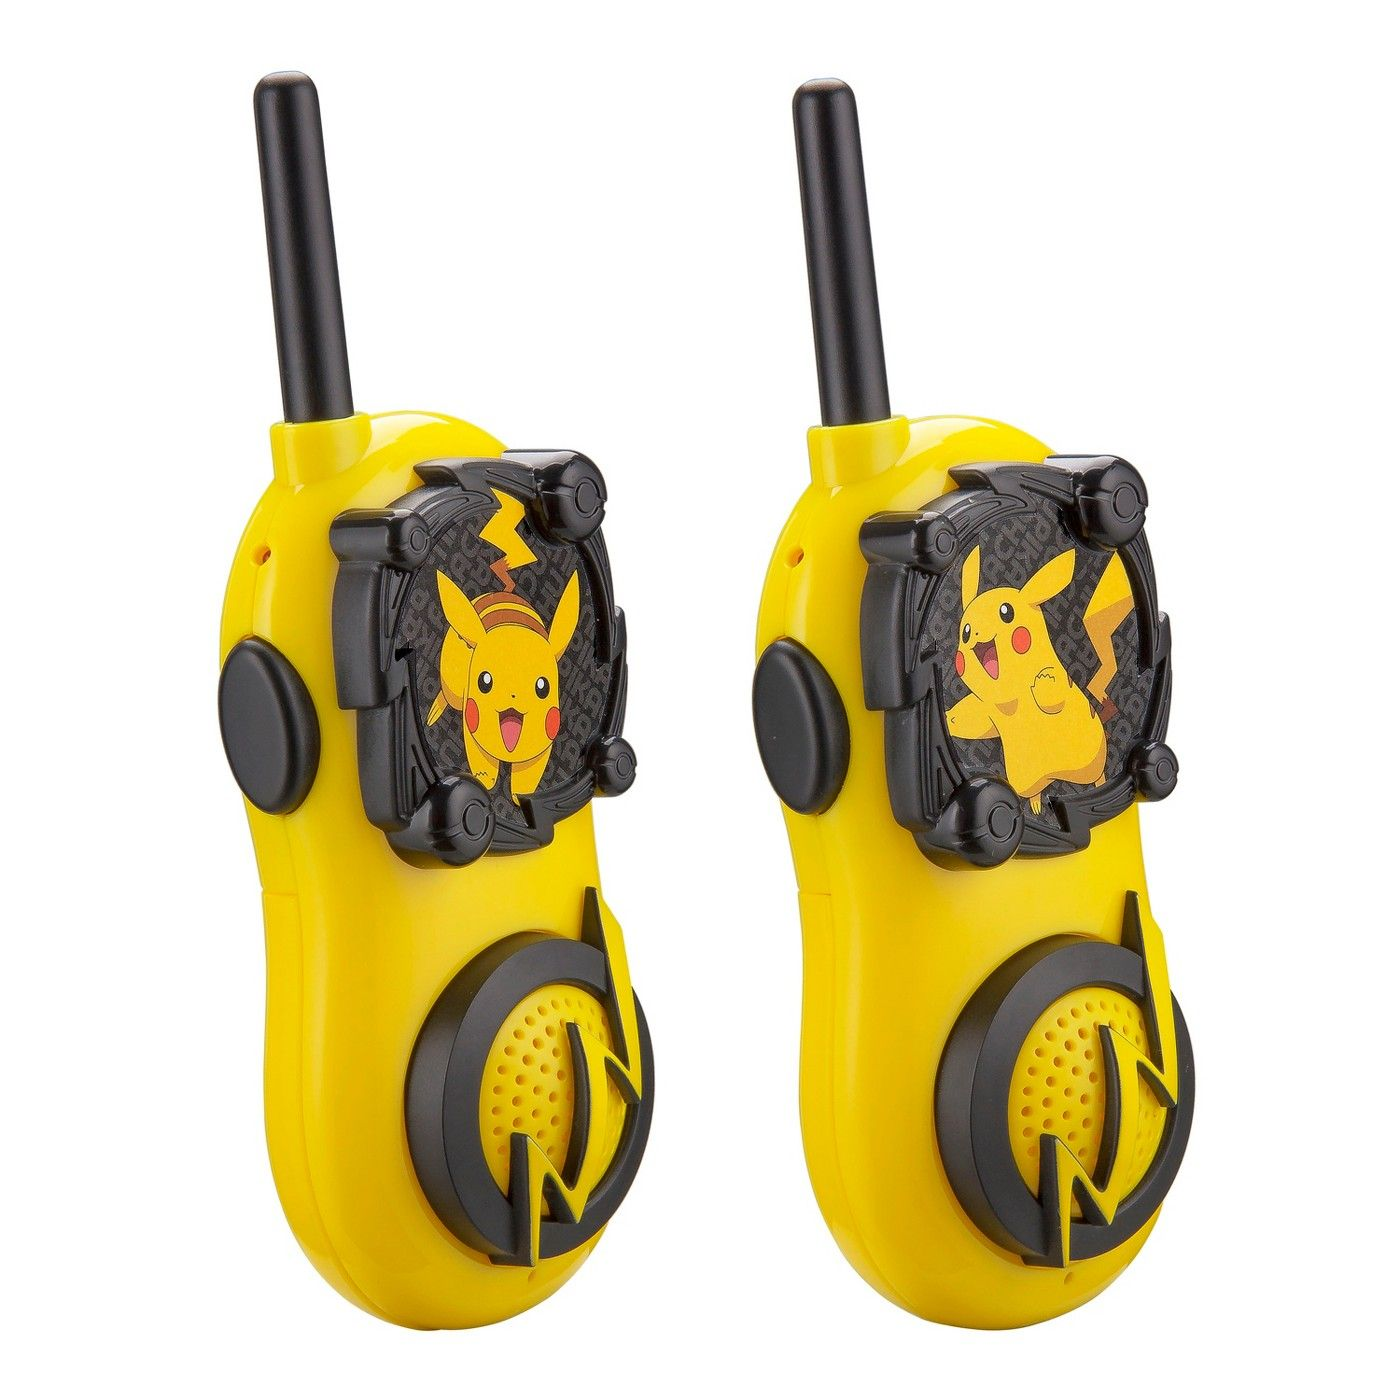 Pokemon Pikachu Walkie Talkies Long Range 2 Way Radios Affiliate